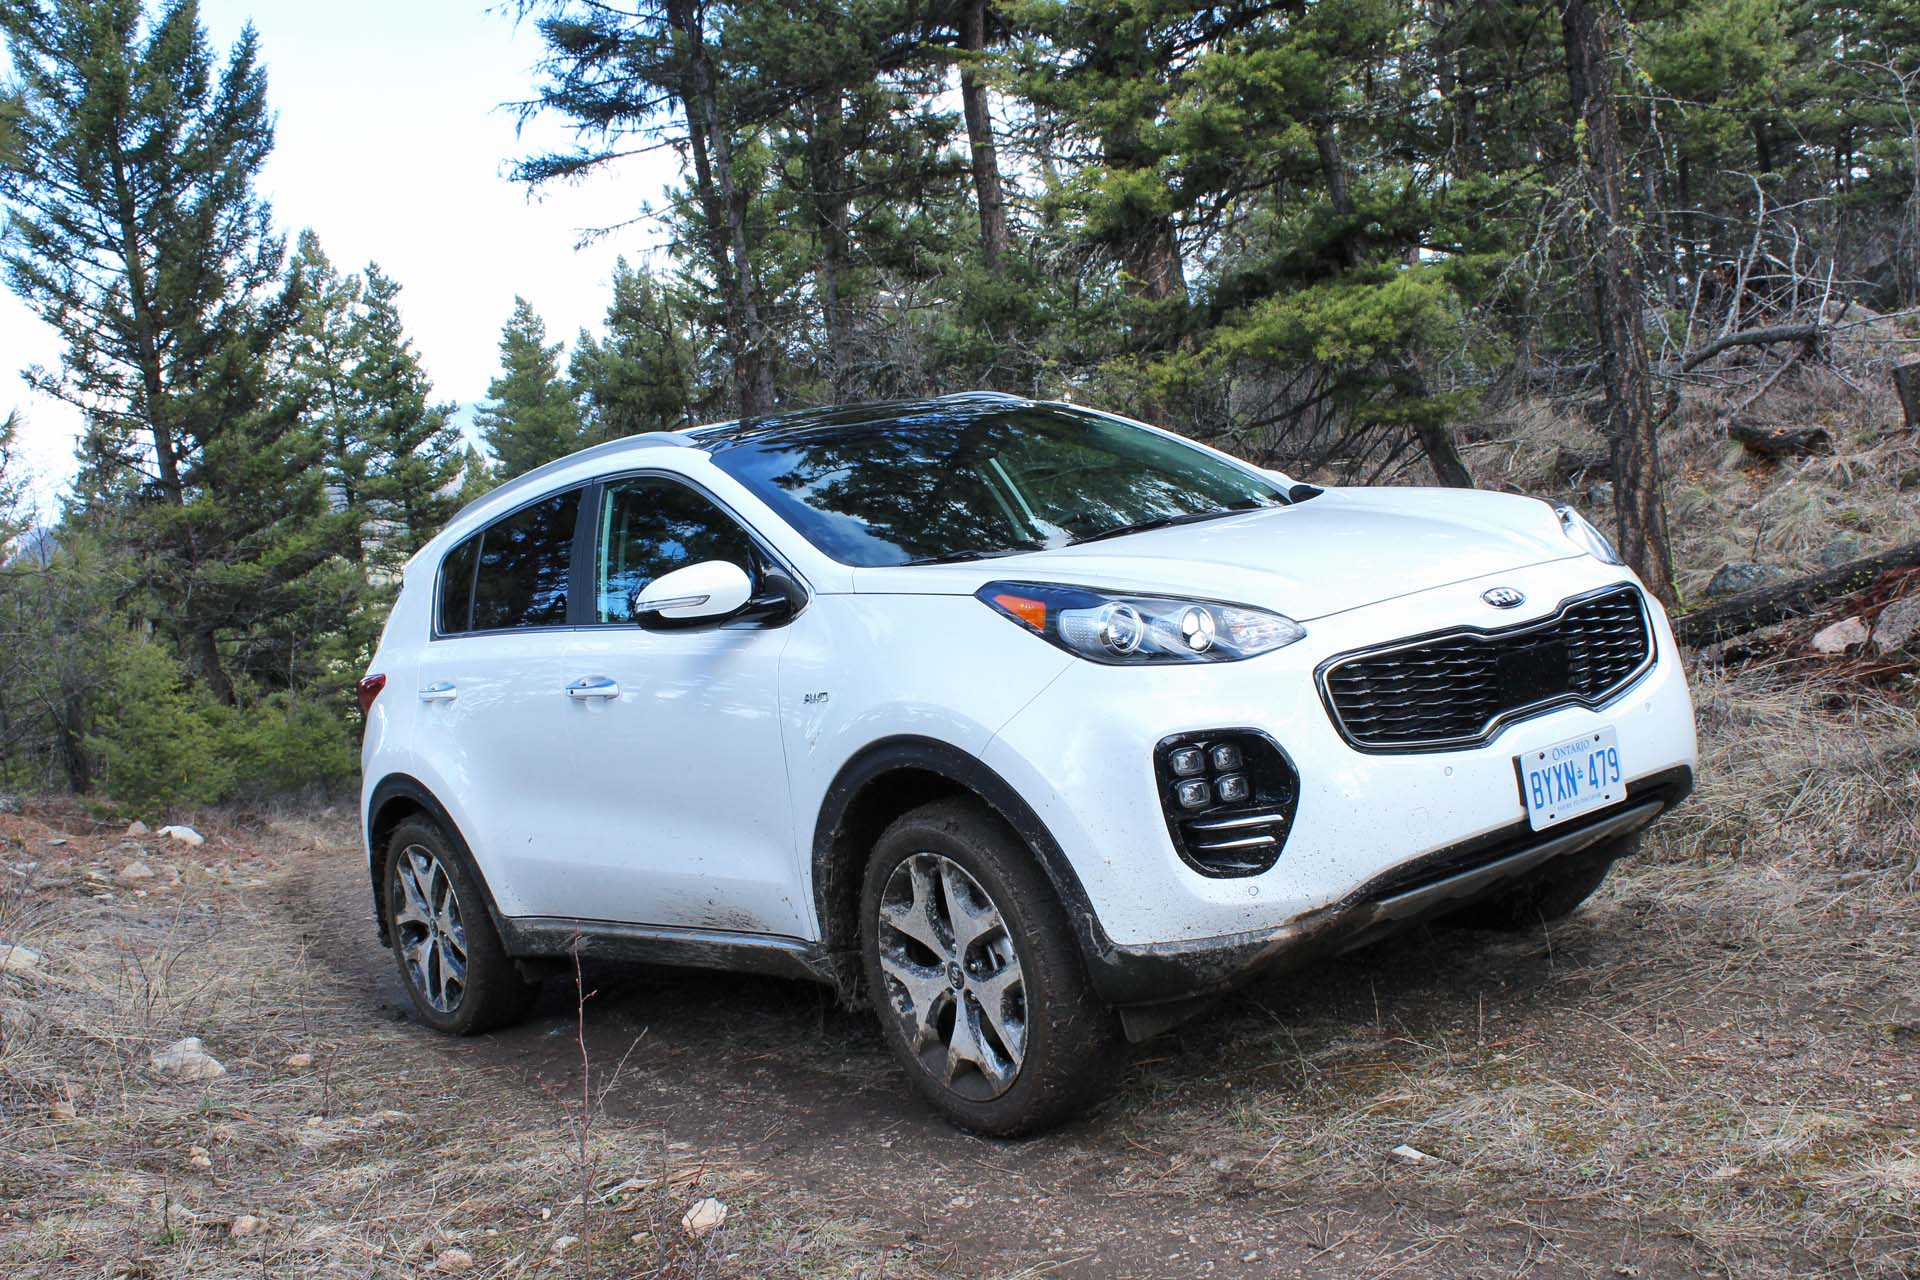 The 2017 Sportage's Dynamax intelligent AWD allows for a 50:50 front:rear torque distribution, a locking centre diff and hill-descent control, standard on all AWD models. In normal driving, torque sits at 95:5 front:rear, but automatically responds to wheel slippage.